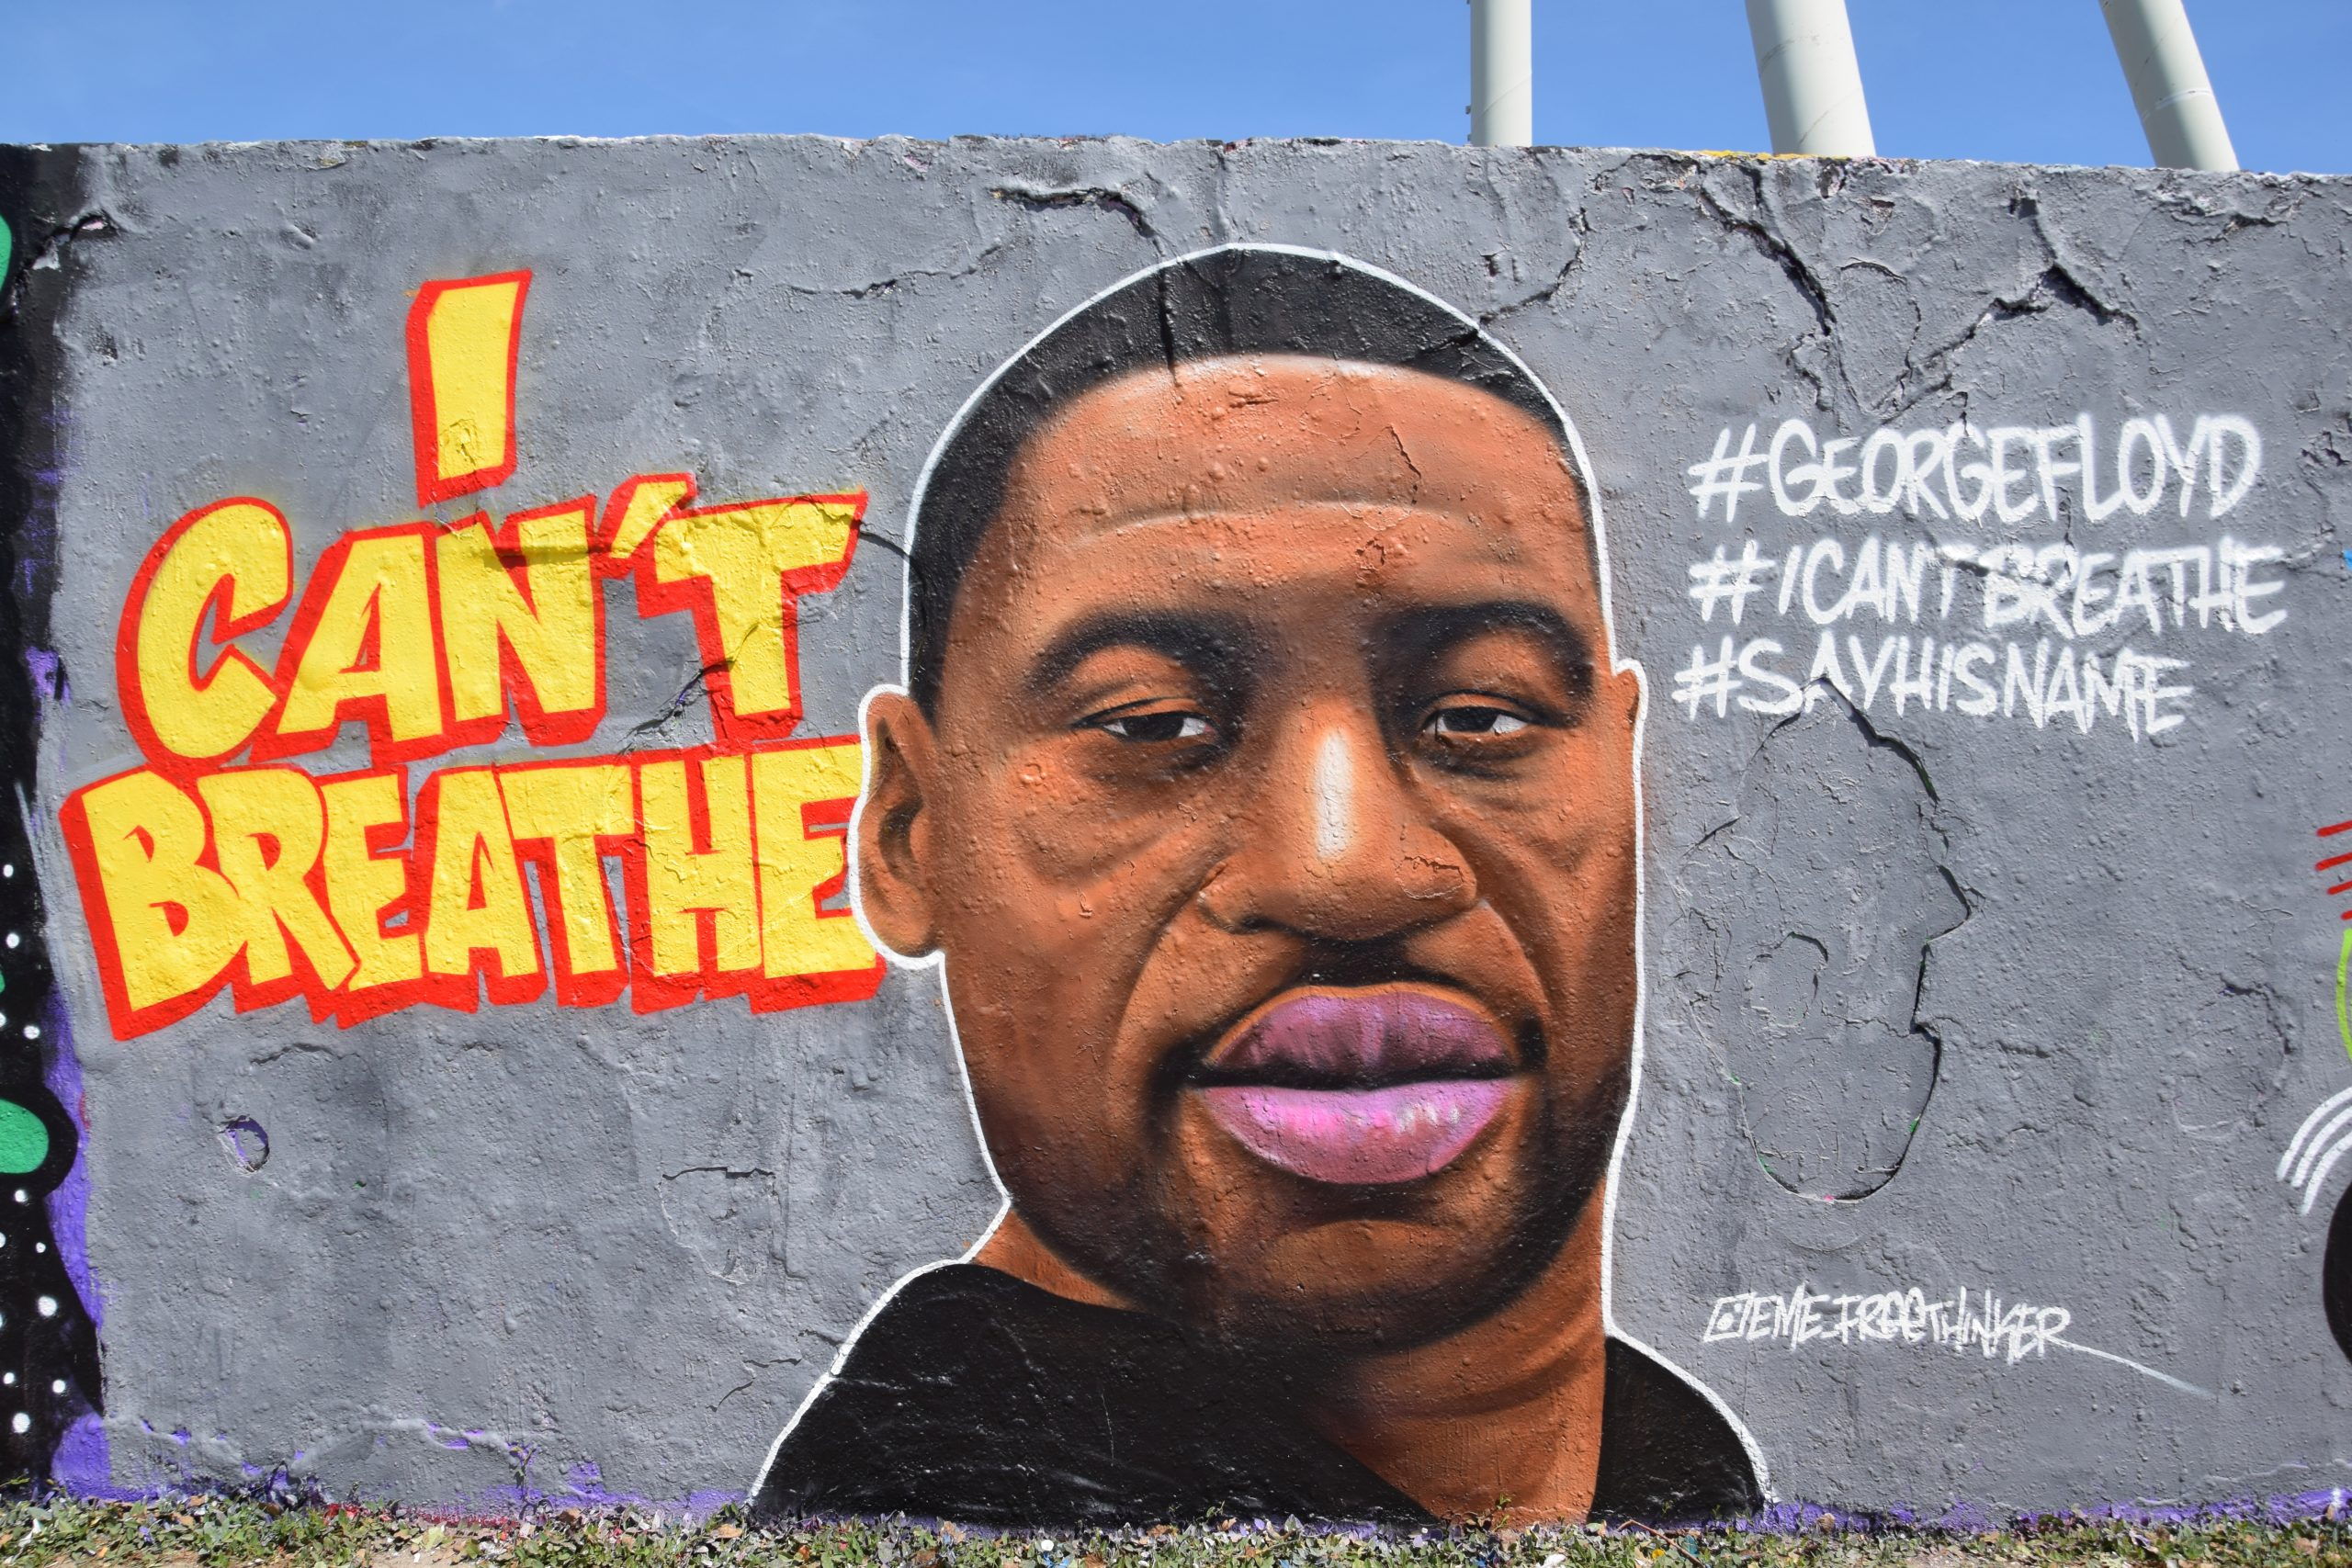 Mural of George Floyd with the text 'I can't breathe' next to it